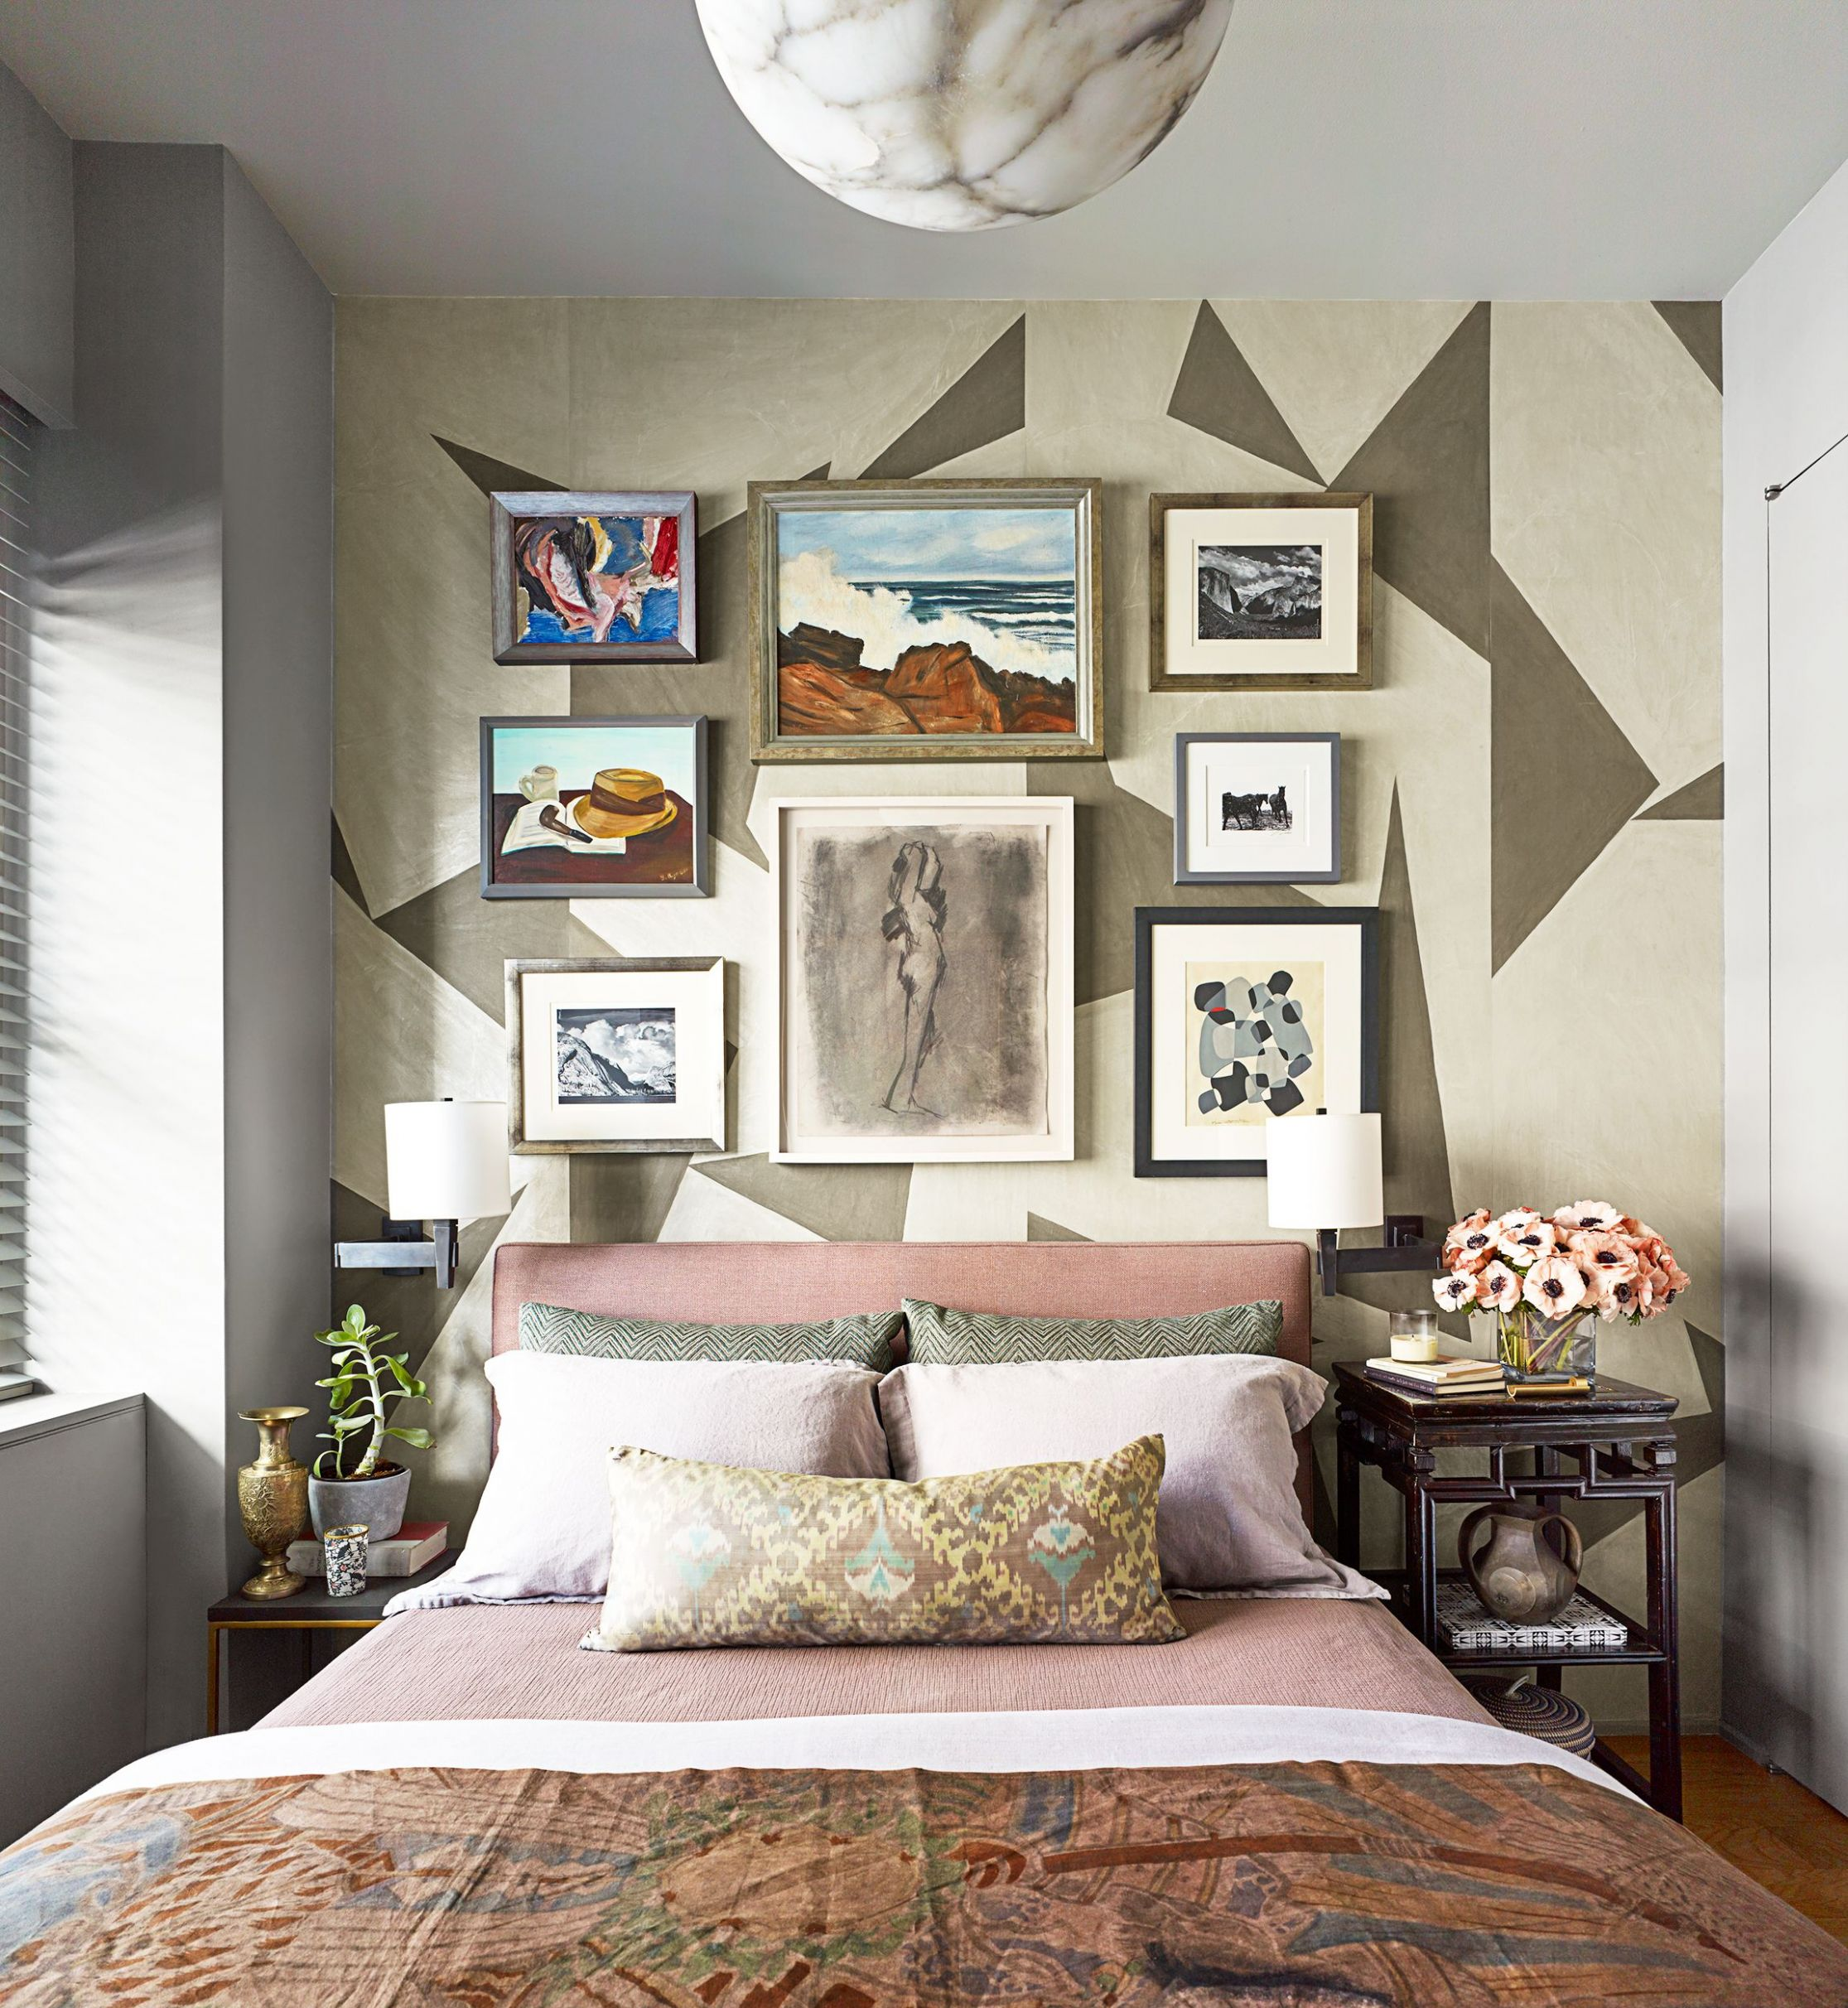 12 Small Bedroom Design Ideas - How to Decorate a Small Bedroom - small bedroom ideas queen bed